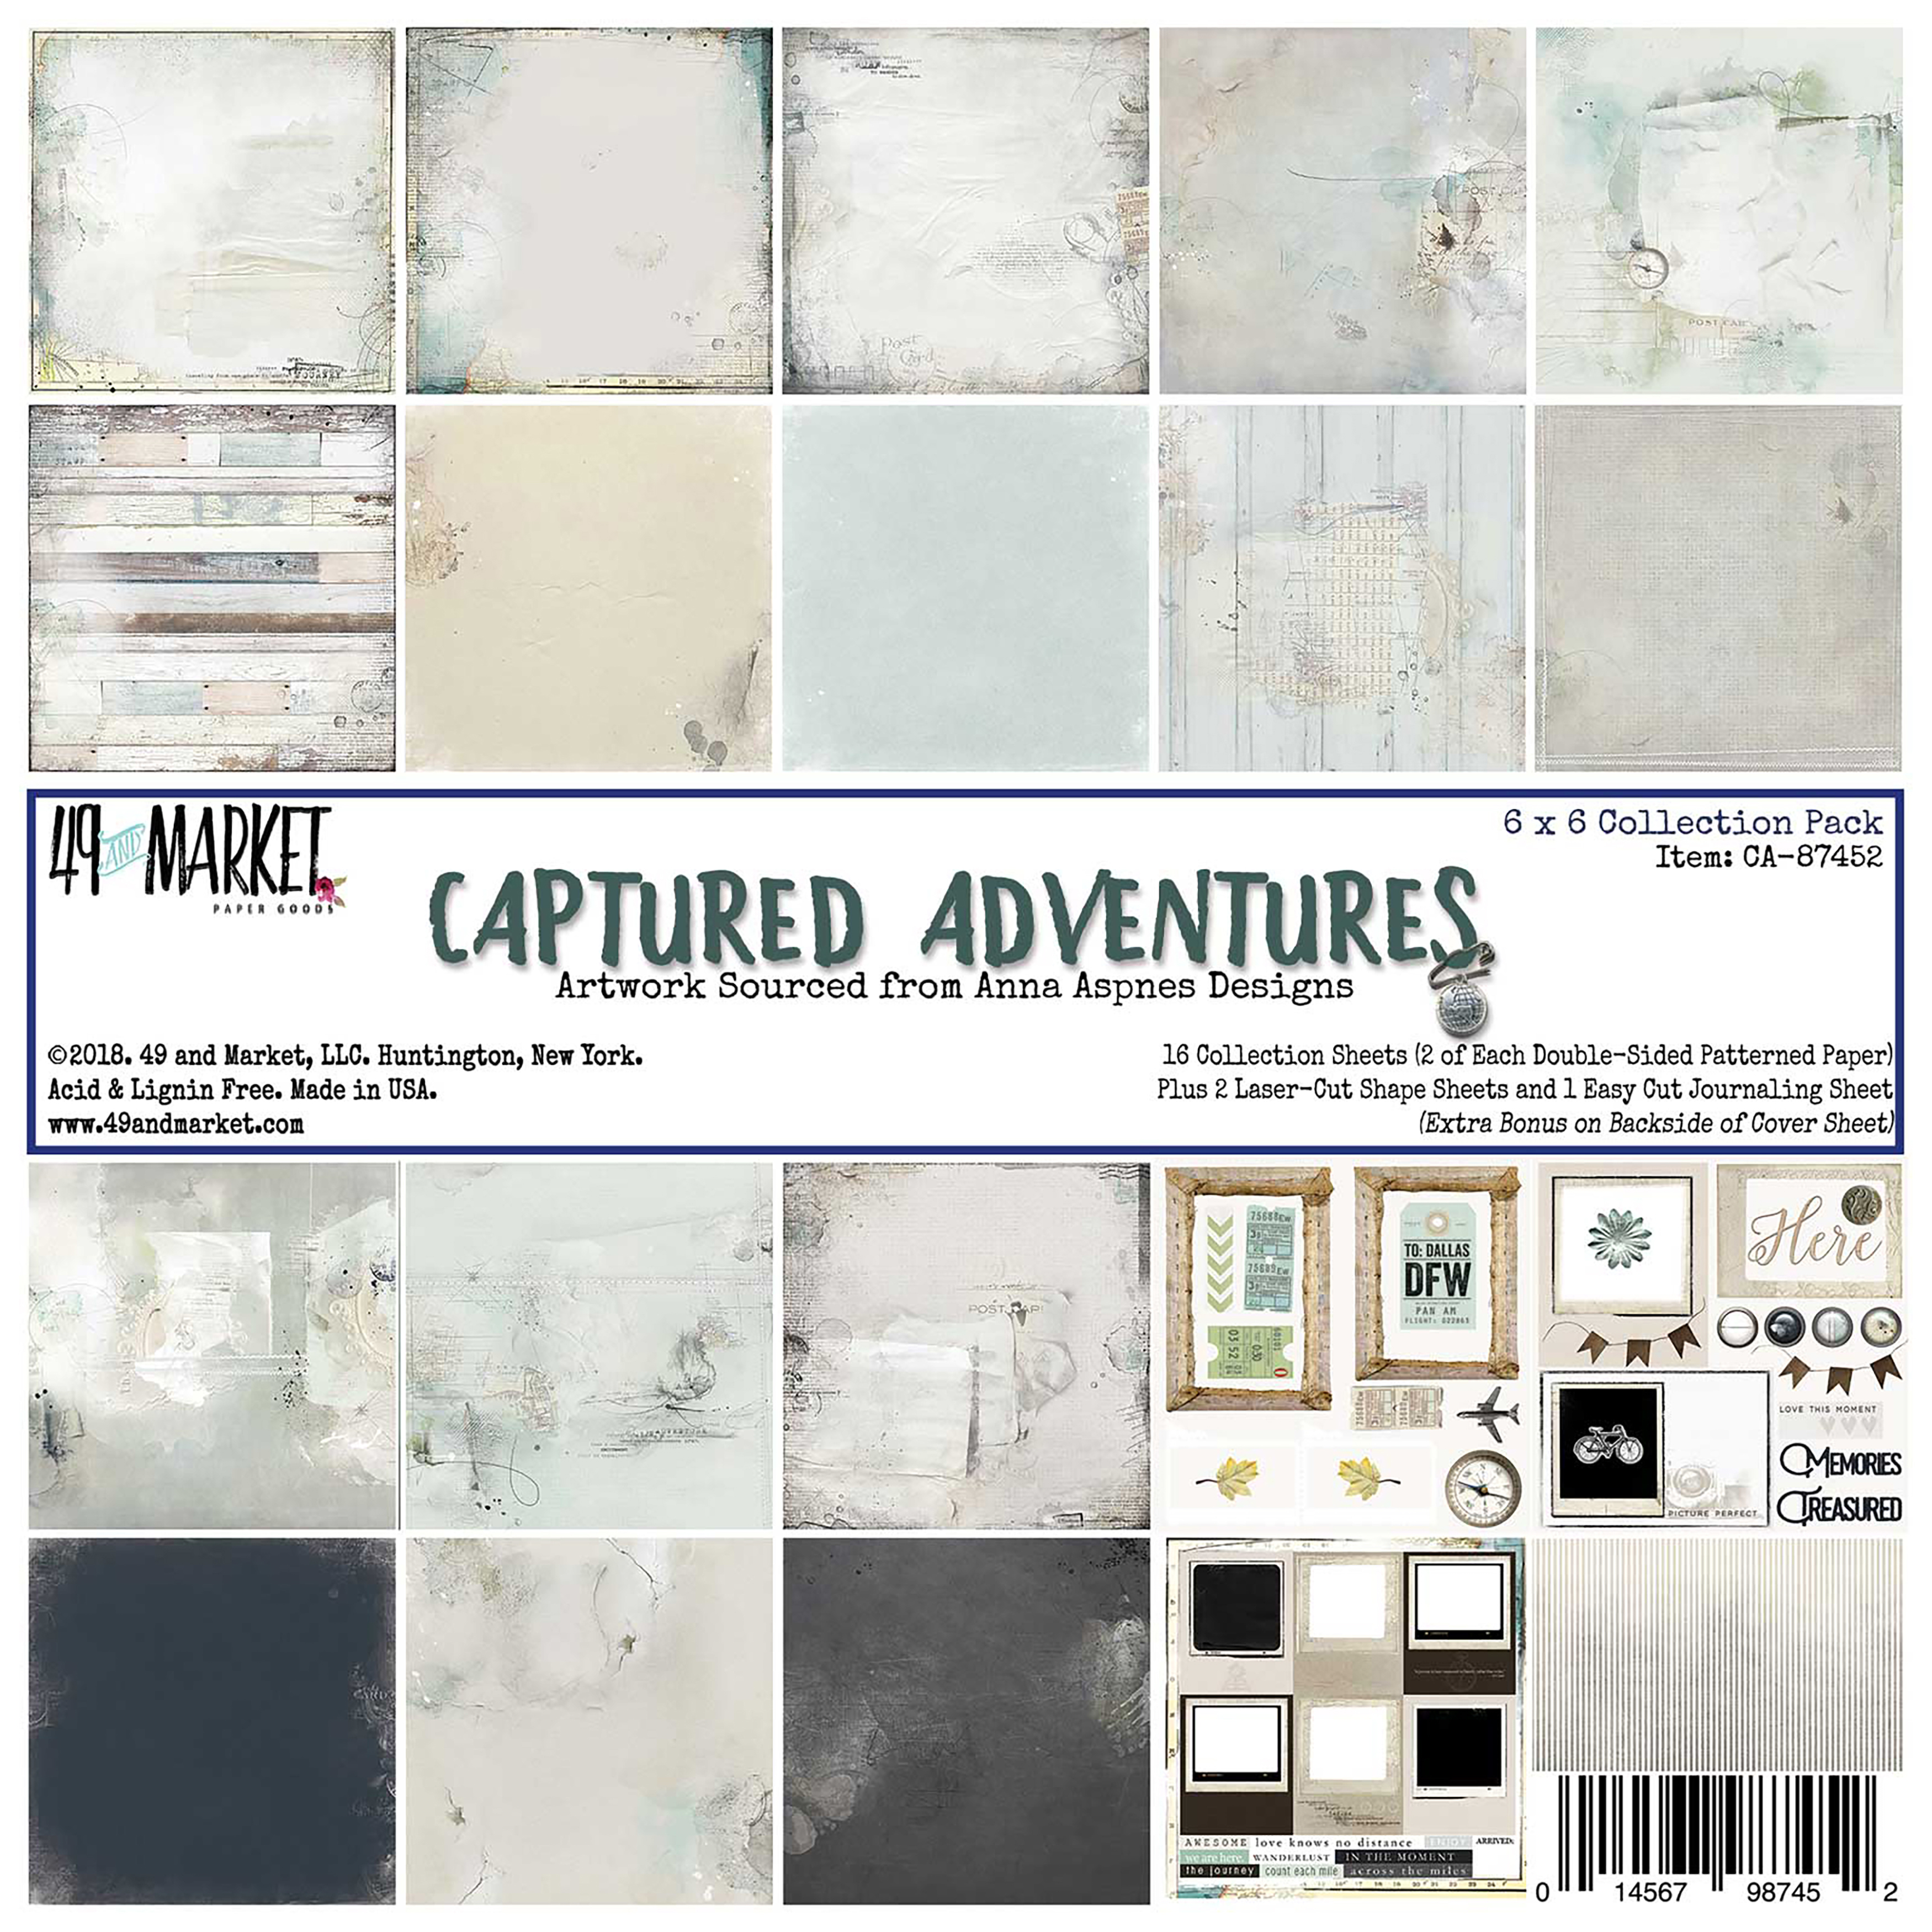 49 And Market Collection Pack 6X6-Captured Adventure